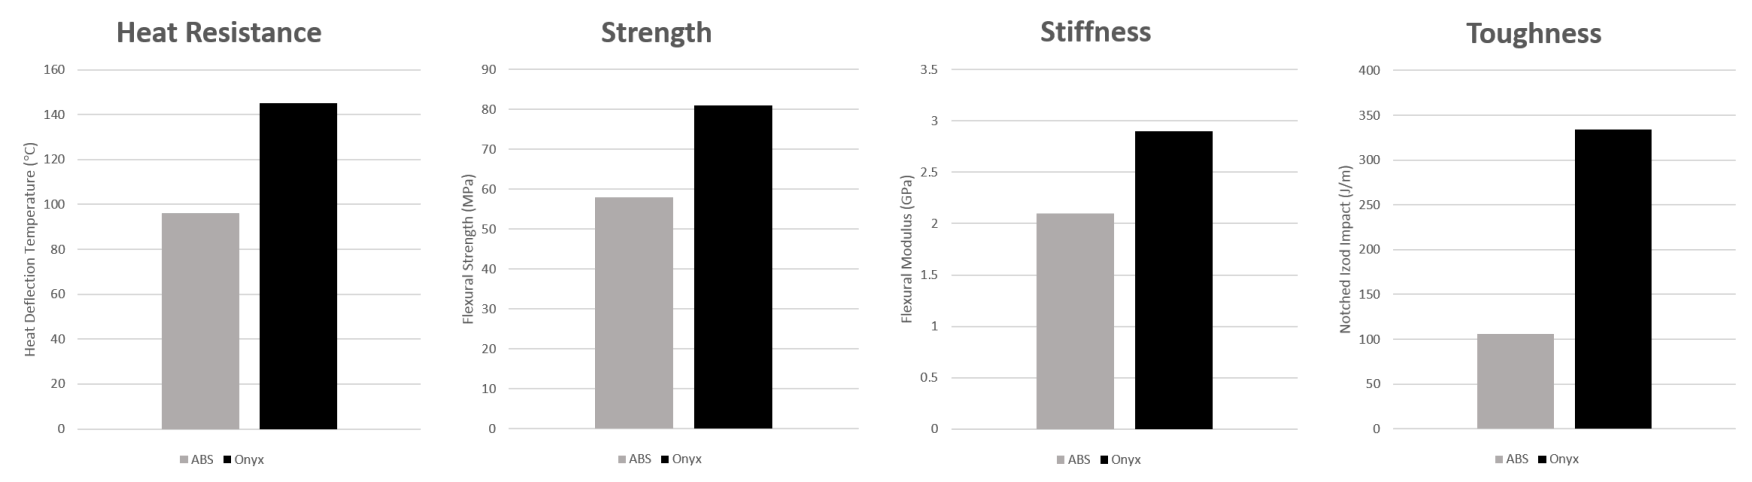 ABS Strength Comparison